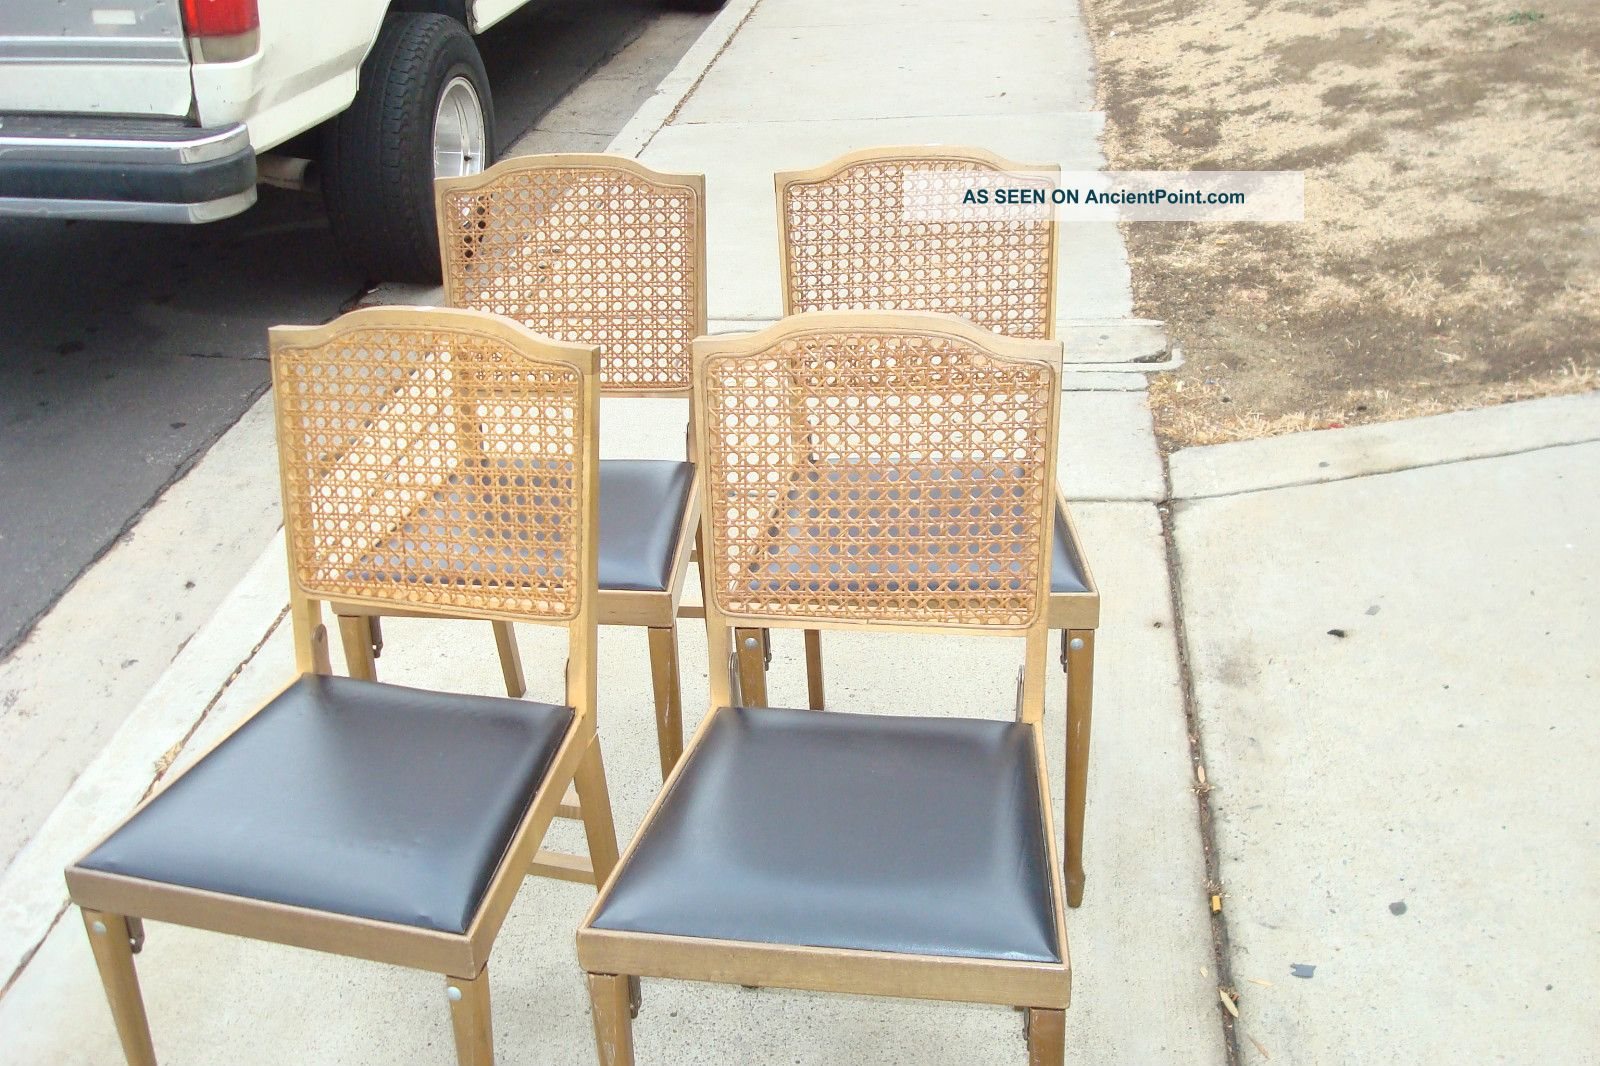 Complete Set Of Legomatic (leg - O - Matic) Folding Table And 4 Chairs Caned Backs Post-1950 photo